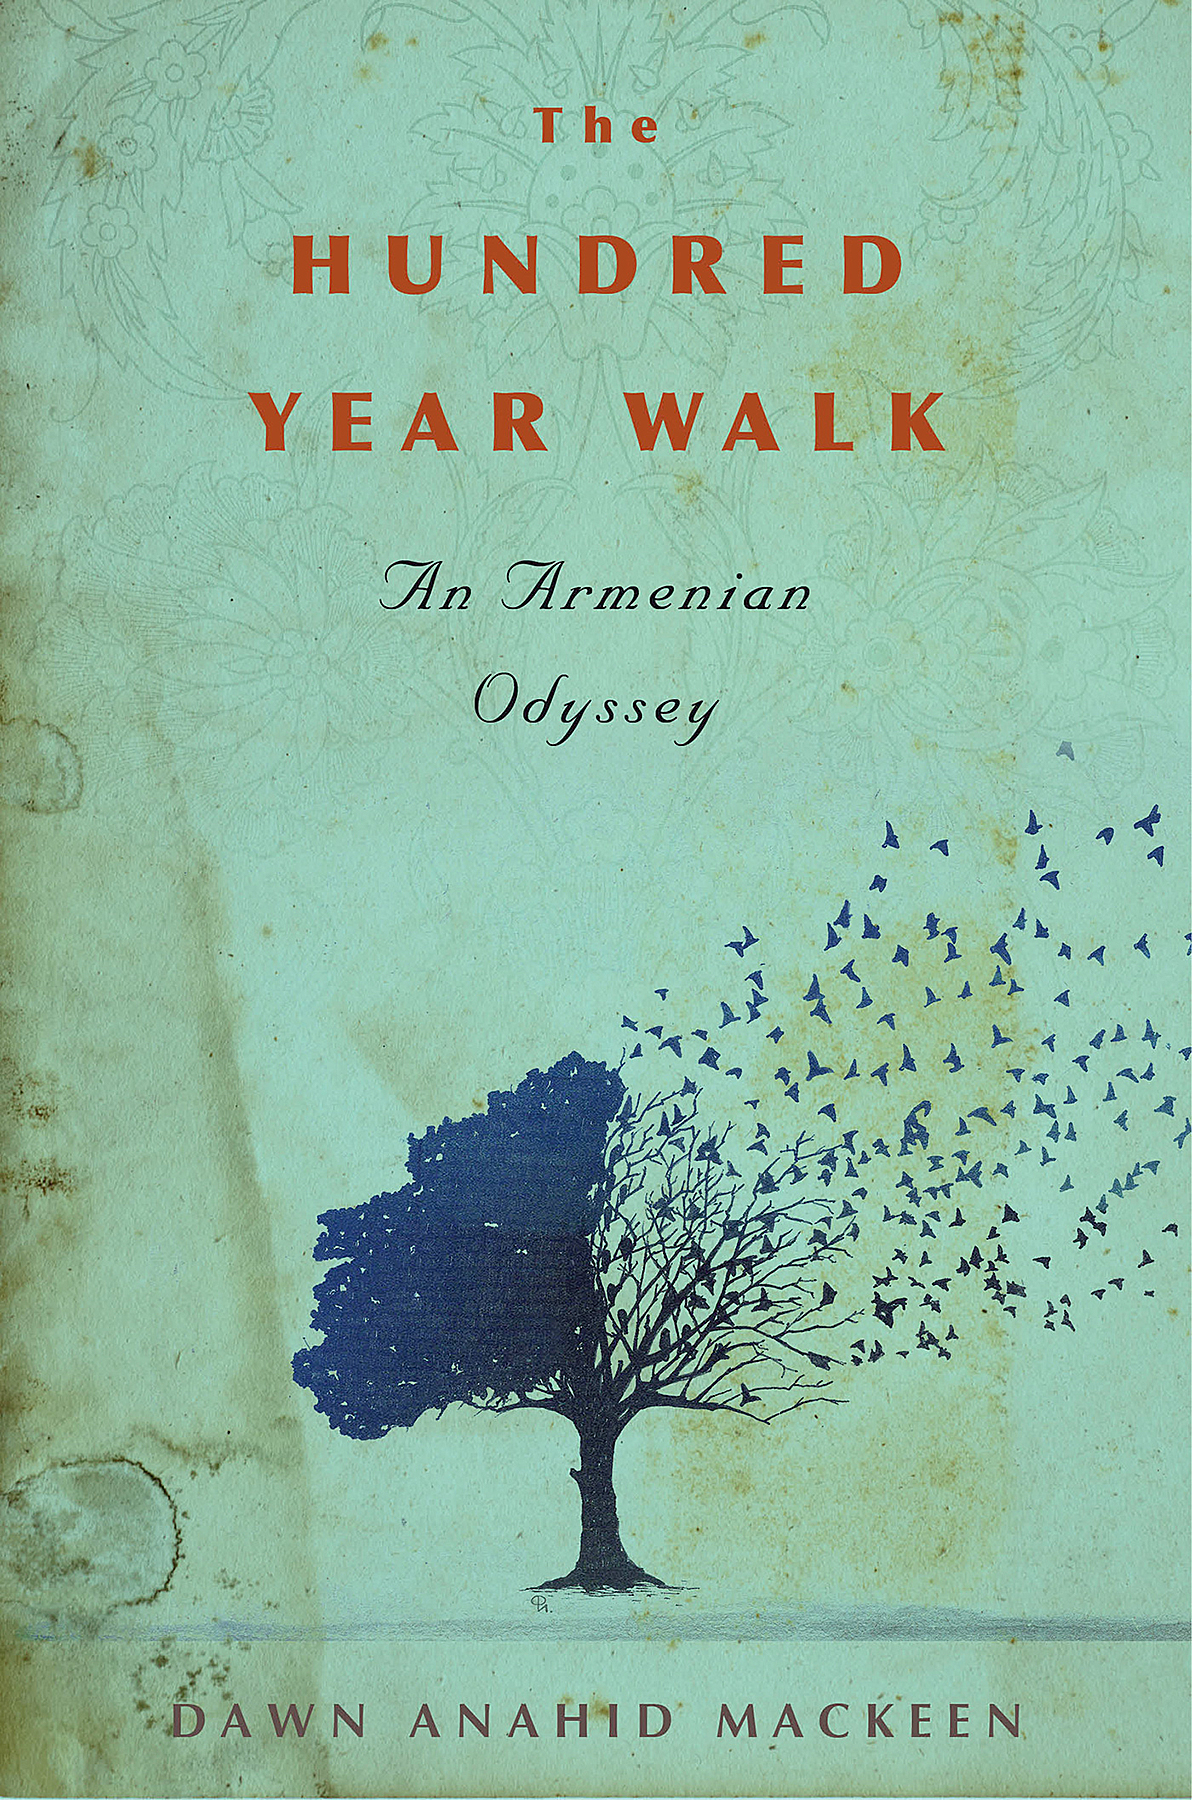 'The Hundred Year Walk'